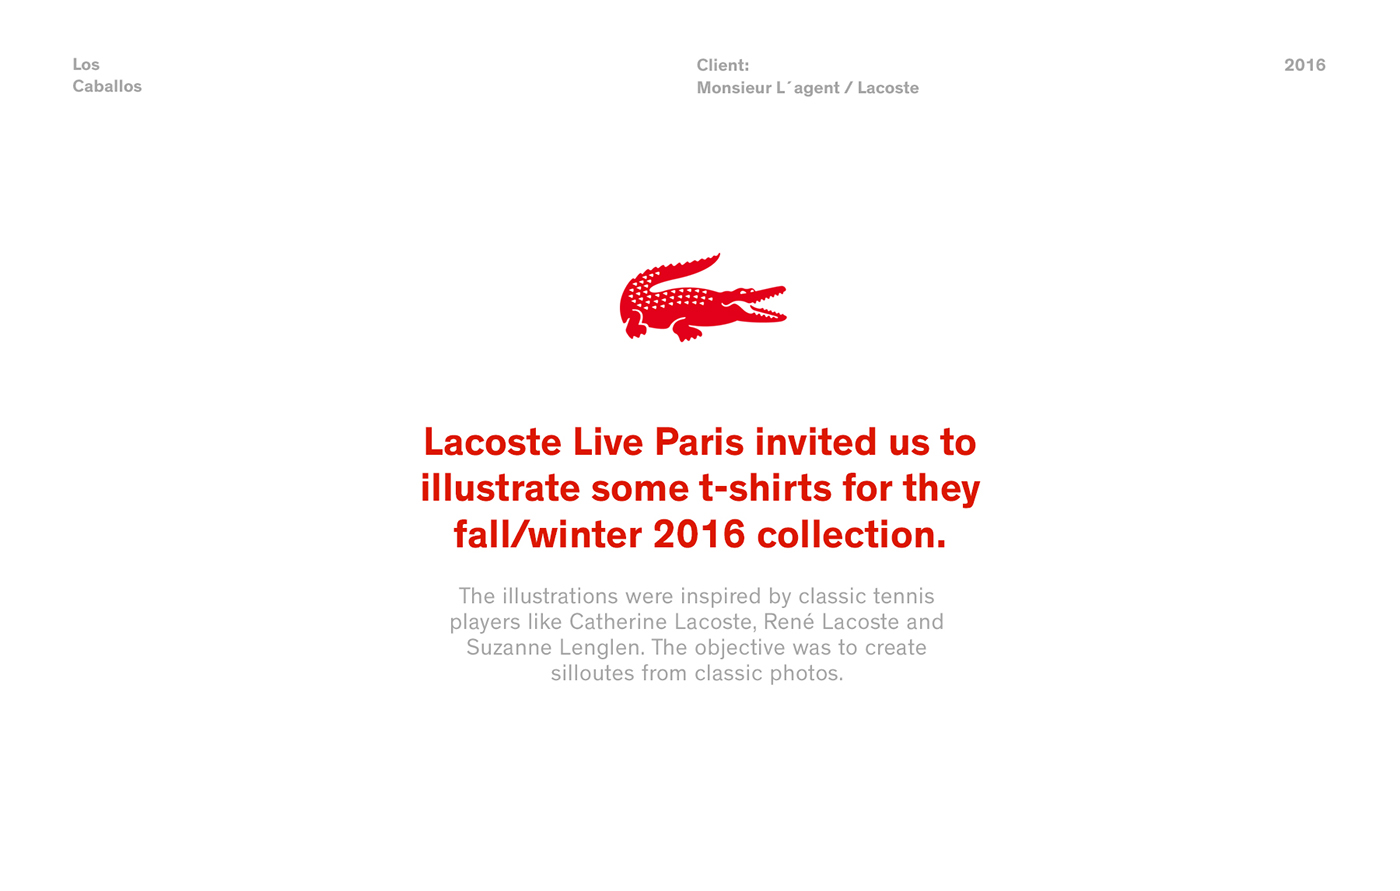 lacoste los caballos  buenos aires argentina france Paris tshirts shirts tennis Lacoste live sport Clothing pattern type